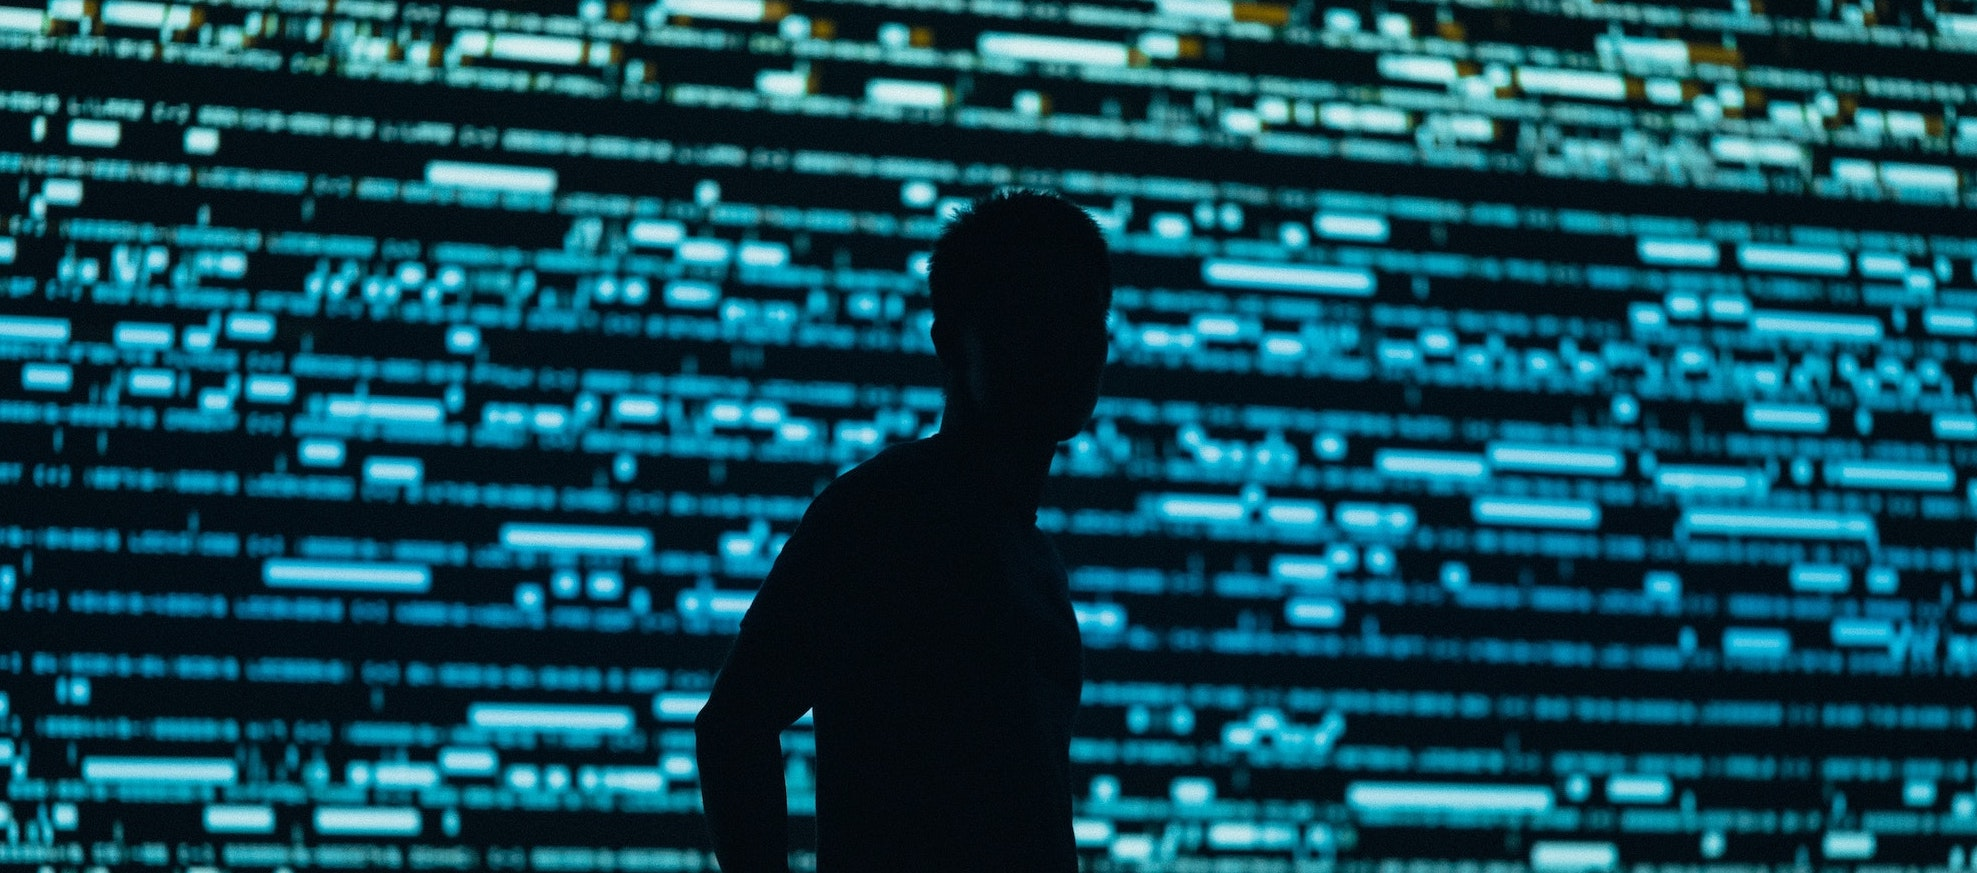 Man in front of screen of code